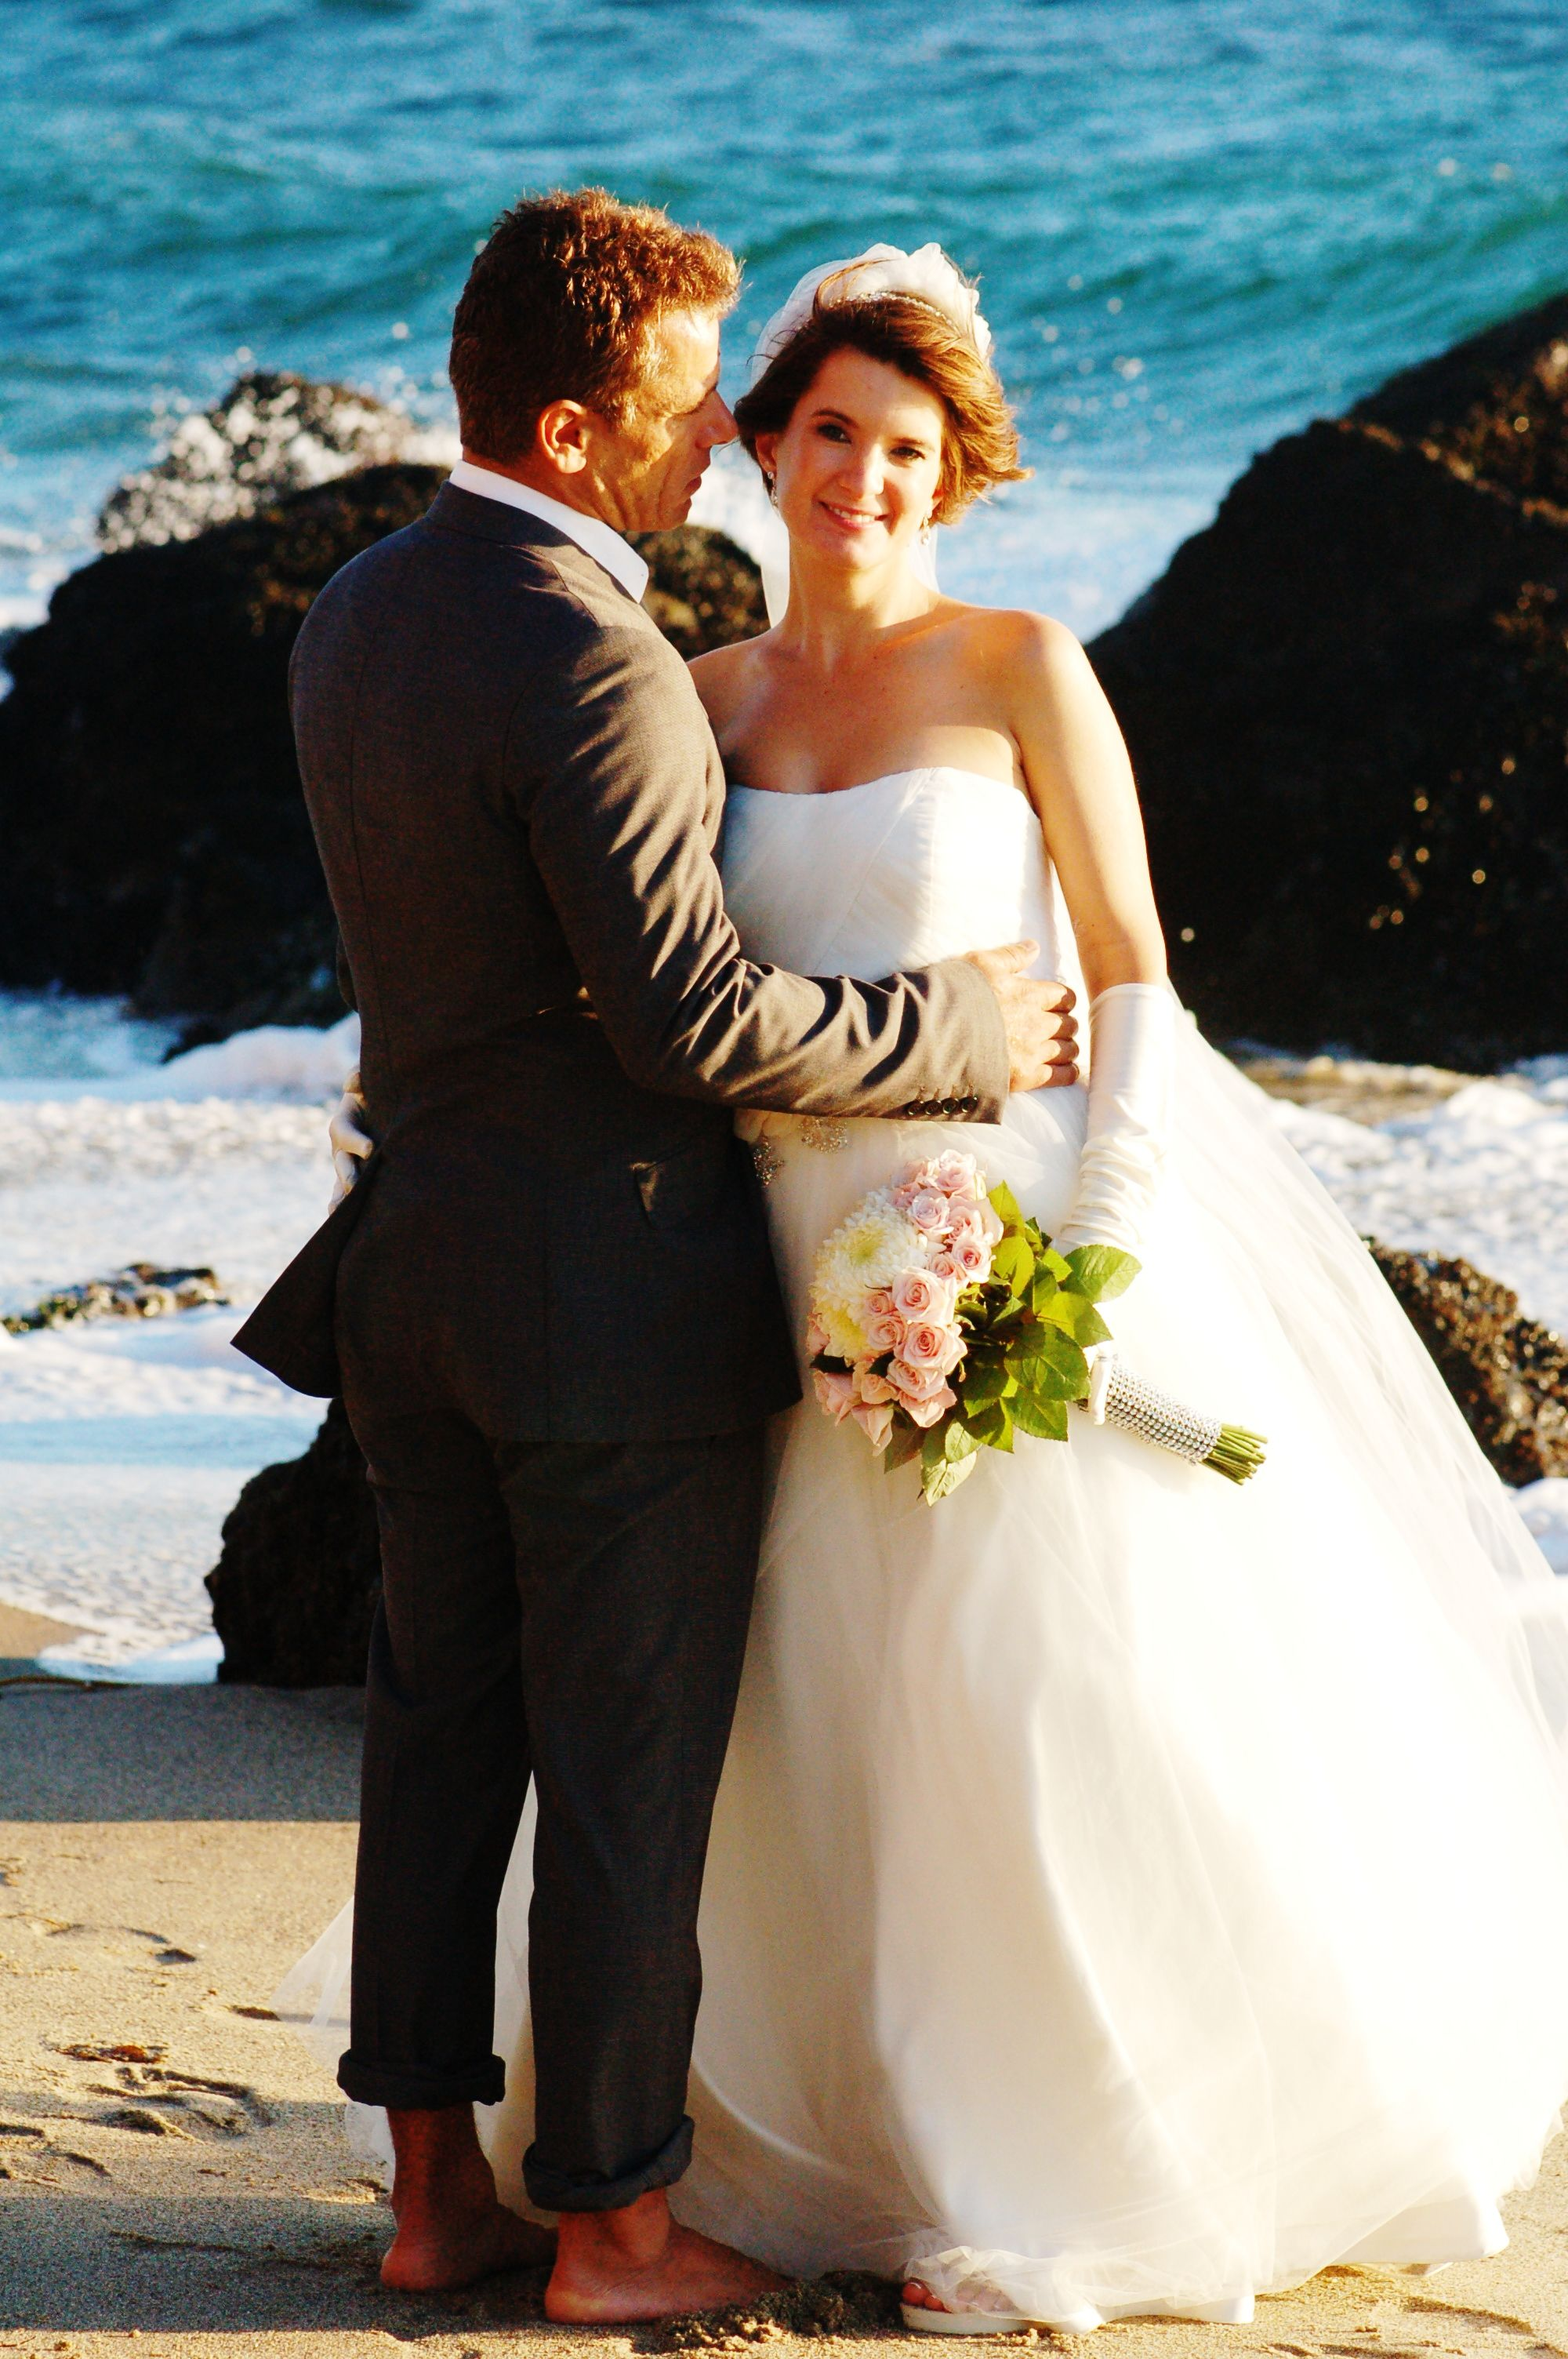 Los Angeles Beach Weddings Offers All Inclusive Wedding Packages